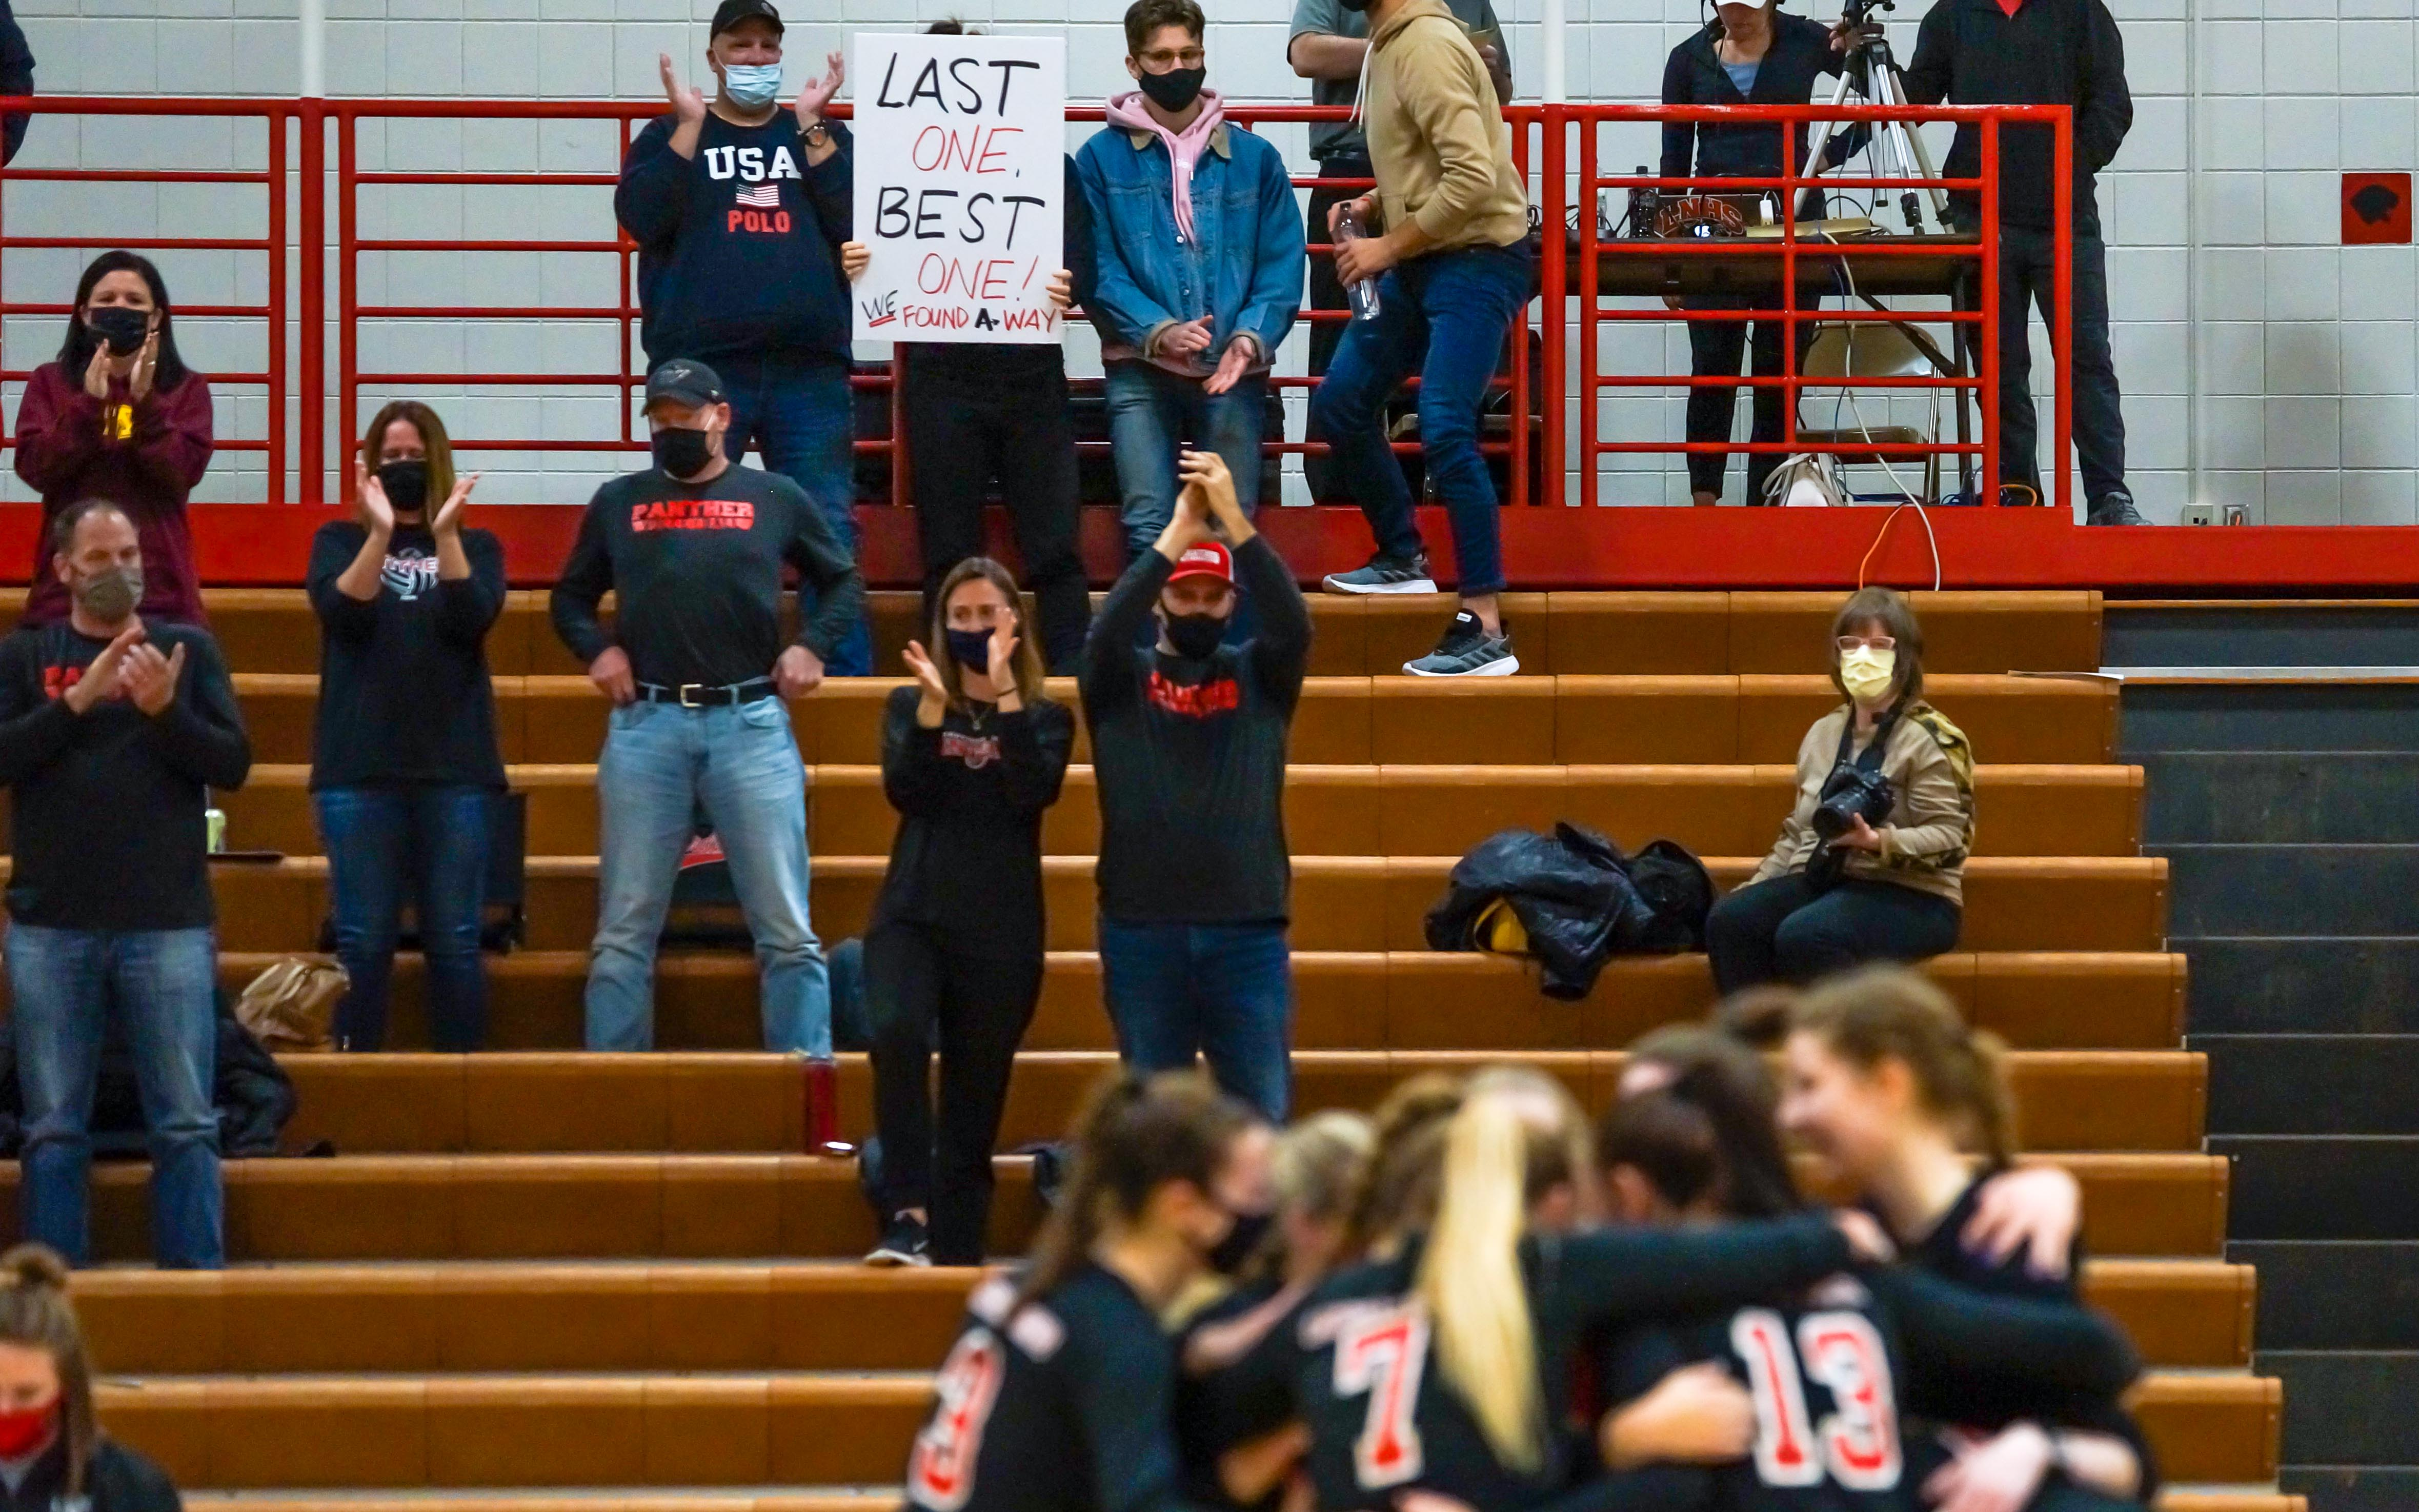 With the Governor Walz's decision to suspend all youth and high school sports Wednesday, Lakeville North parents show their appreciation for the season the Panthers were able to have. Photo by Korey McDermott, SportsEngine